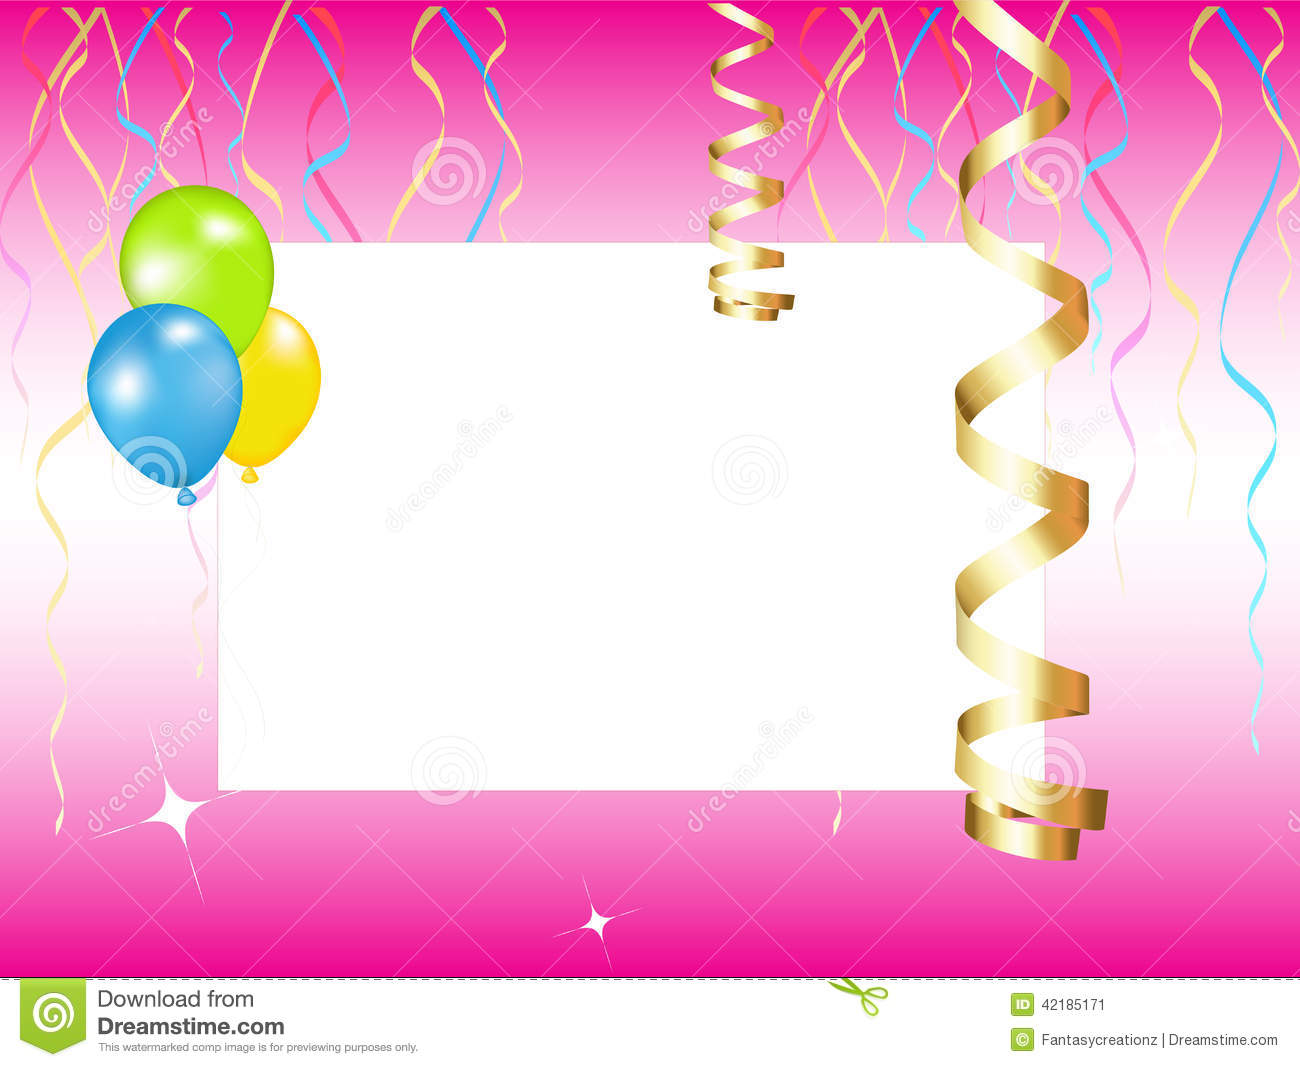 Plain And Simple Party Invitation Background Design With Balloons